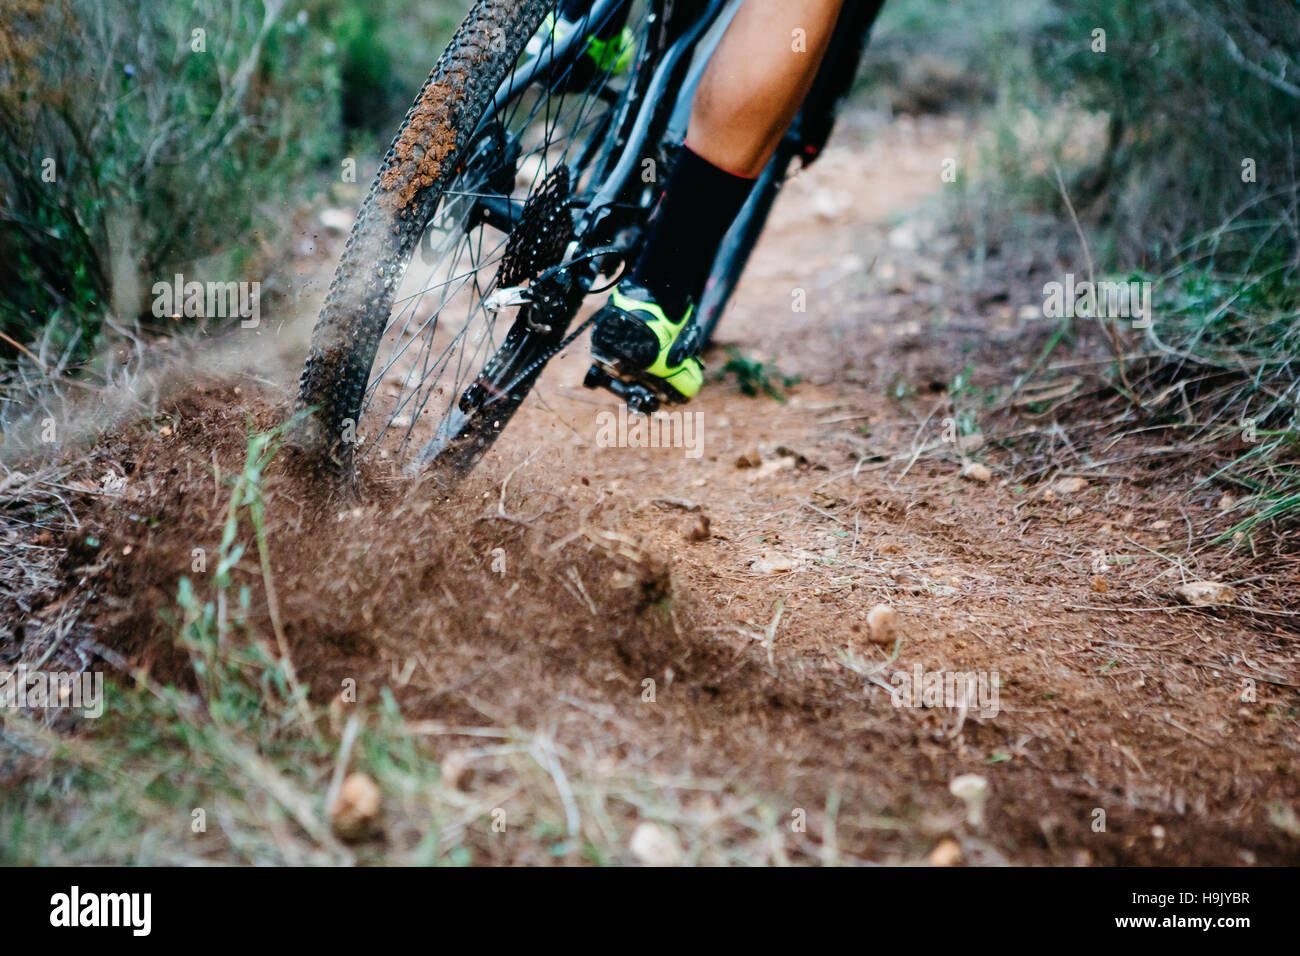 Close-up of mountainbiker déraper dans un virage Photo Stock